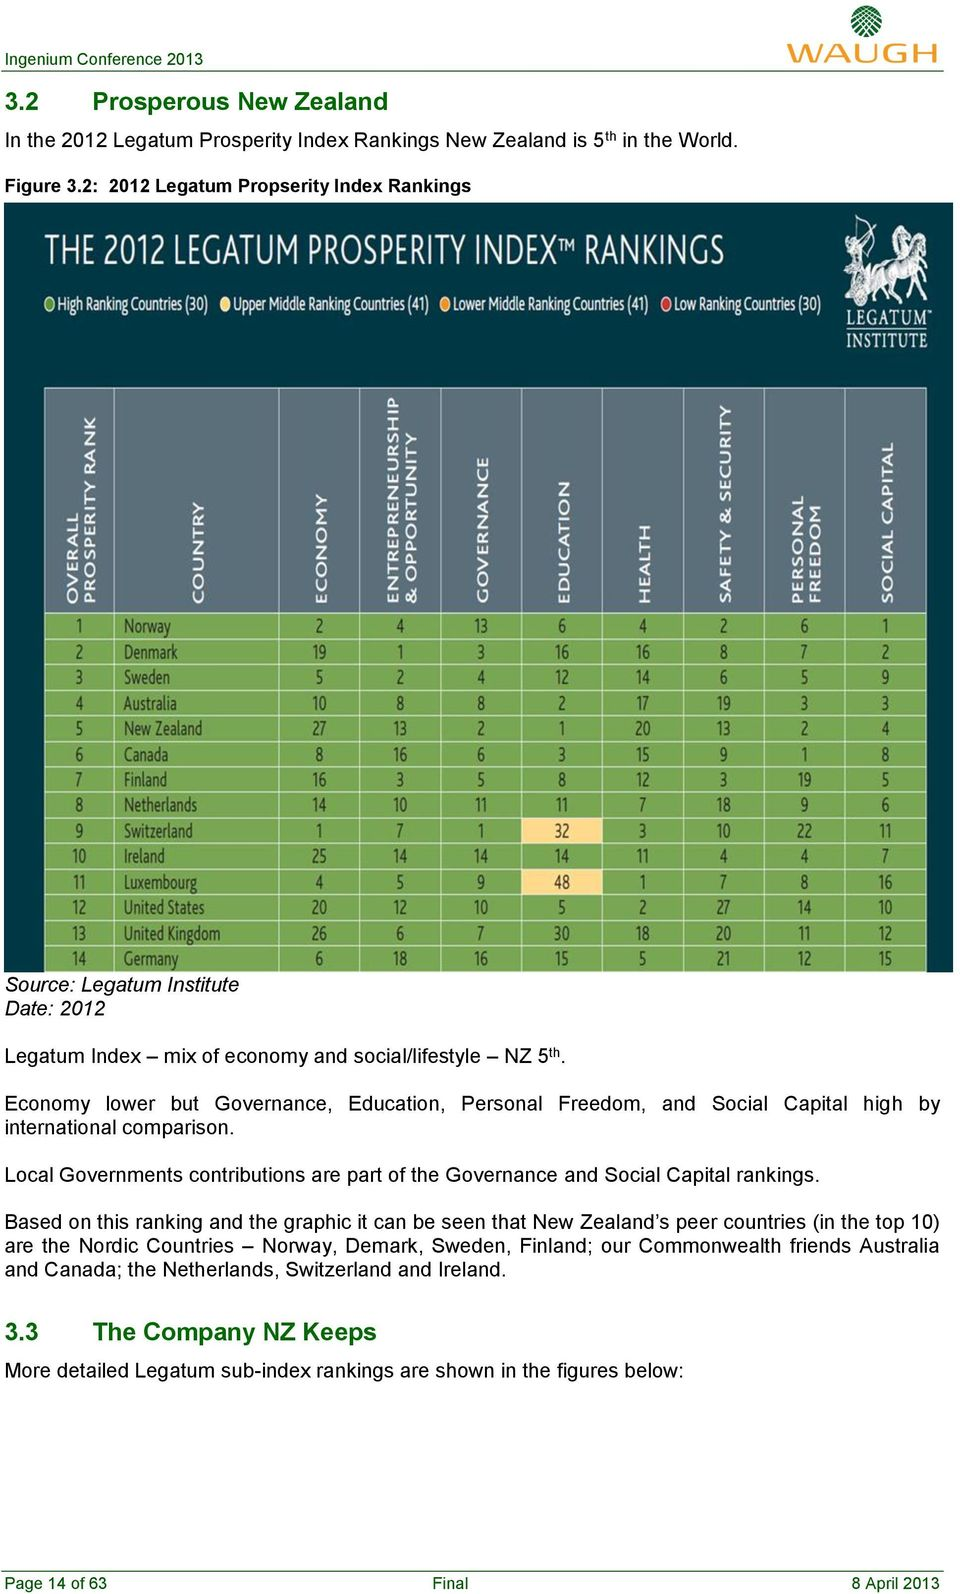 Economy lower but Governance, Education, Personal Freedom, and Social Capital high by international comparison. Local Governments contributions are part of the Governance and Social Capital rankings.